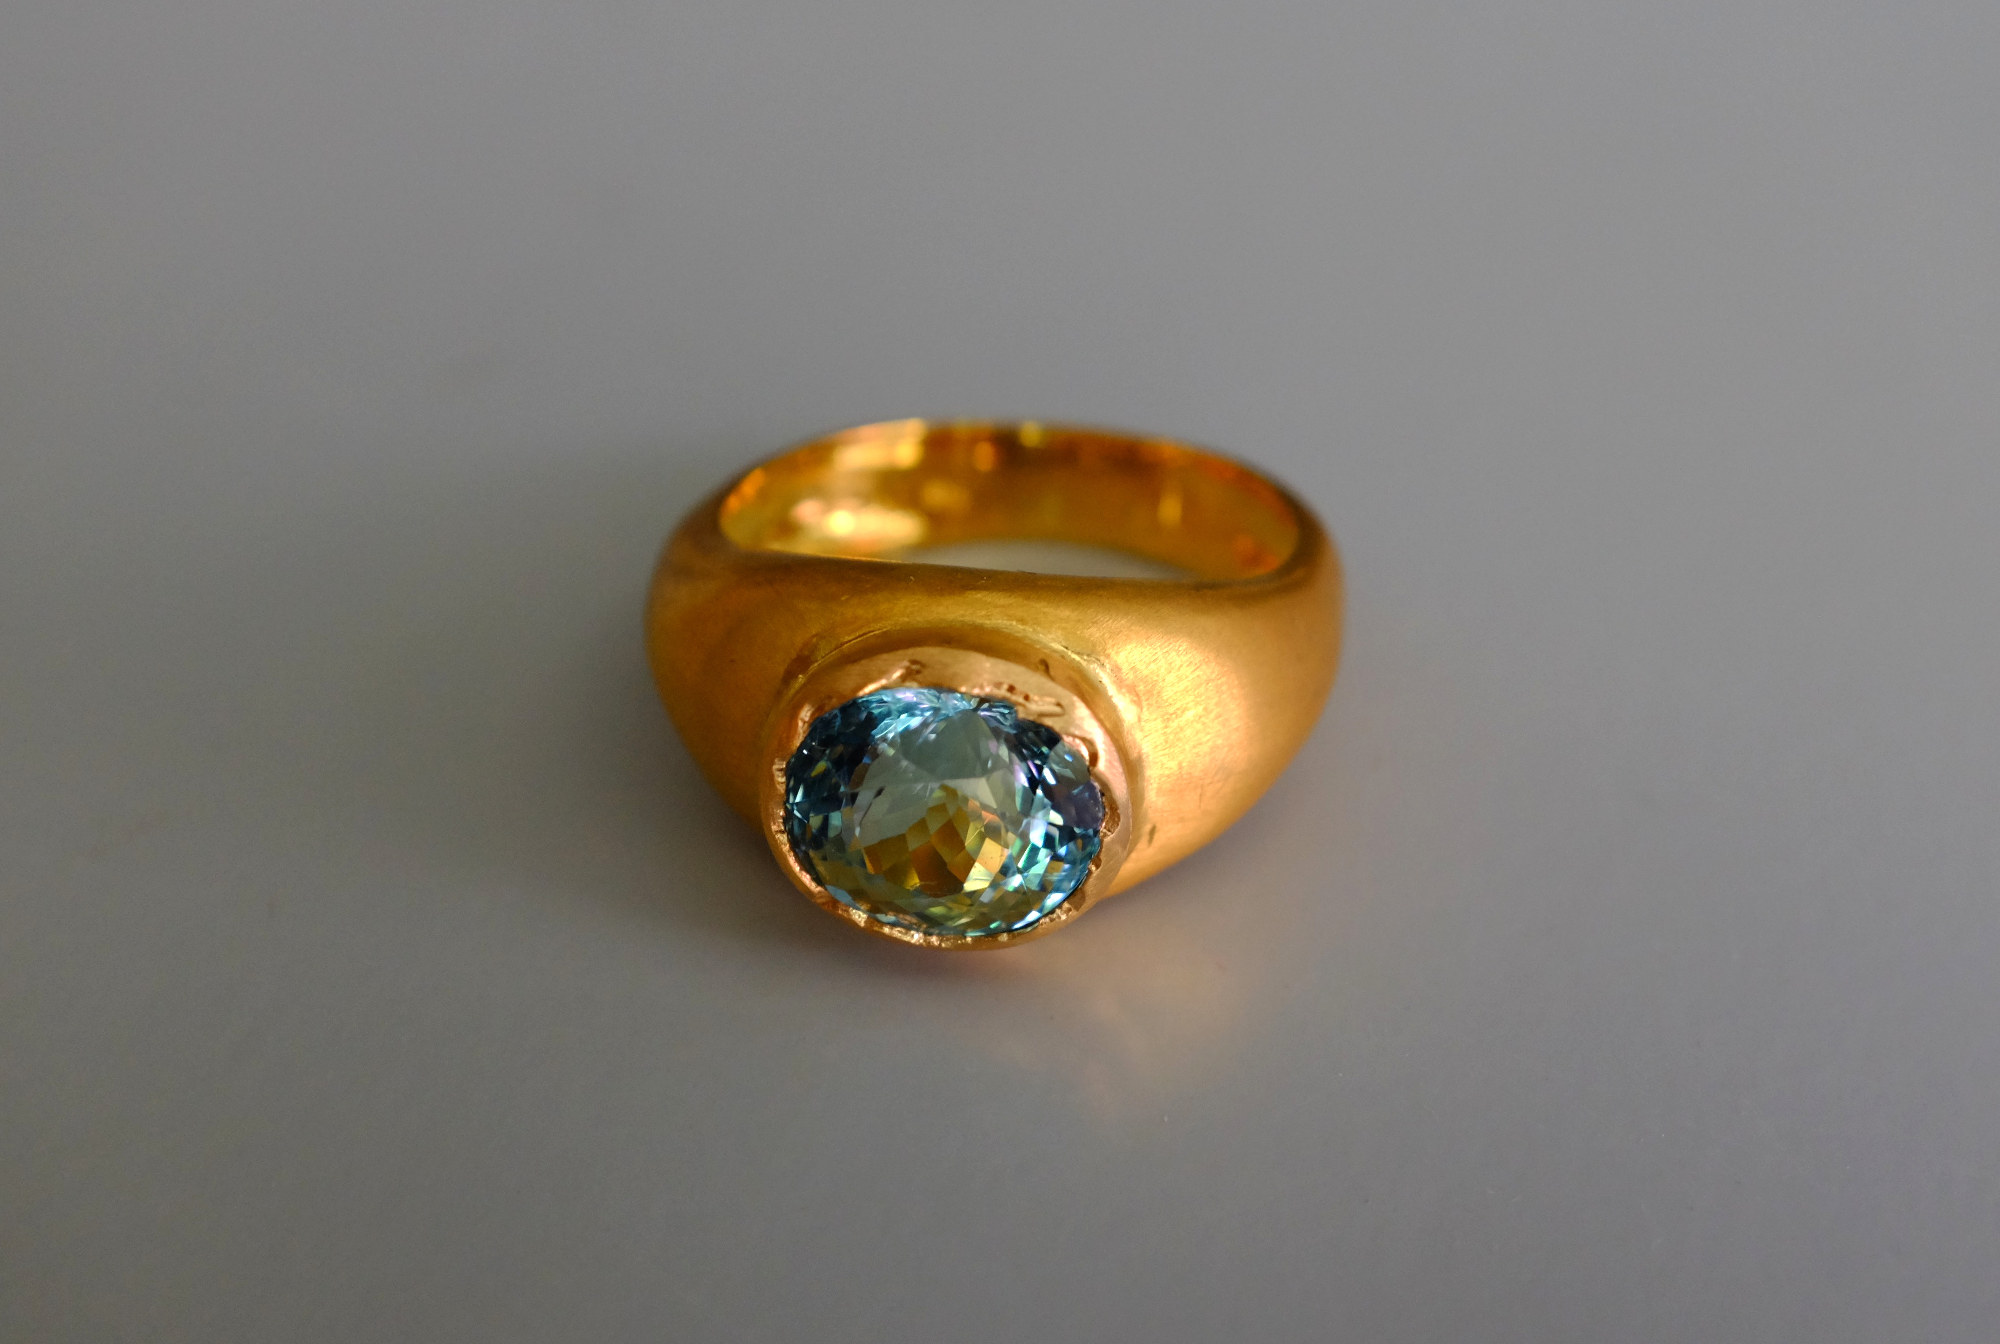 SIJS, roman gold ring, handmade fine jewelry, medieval style gold rings, mens antique style rings, aquamarine ring mens, bespoke jewellery singapore, fine jewellery singapore